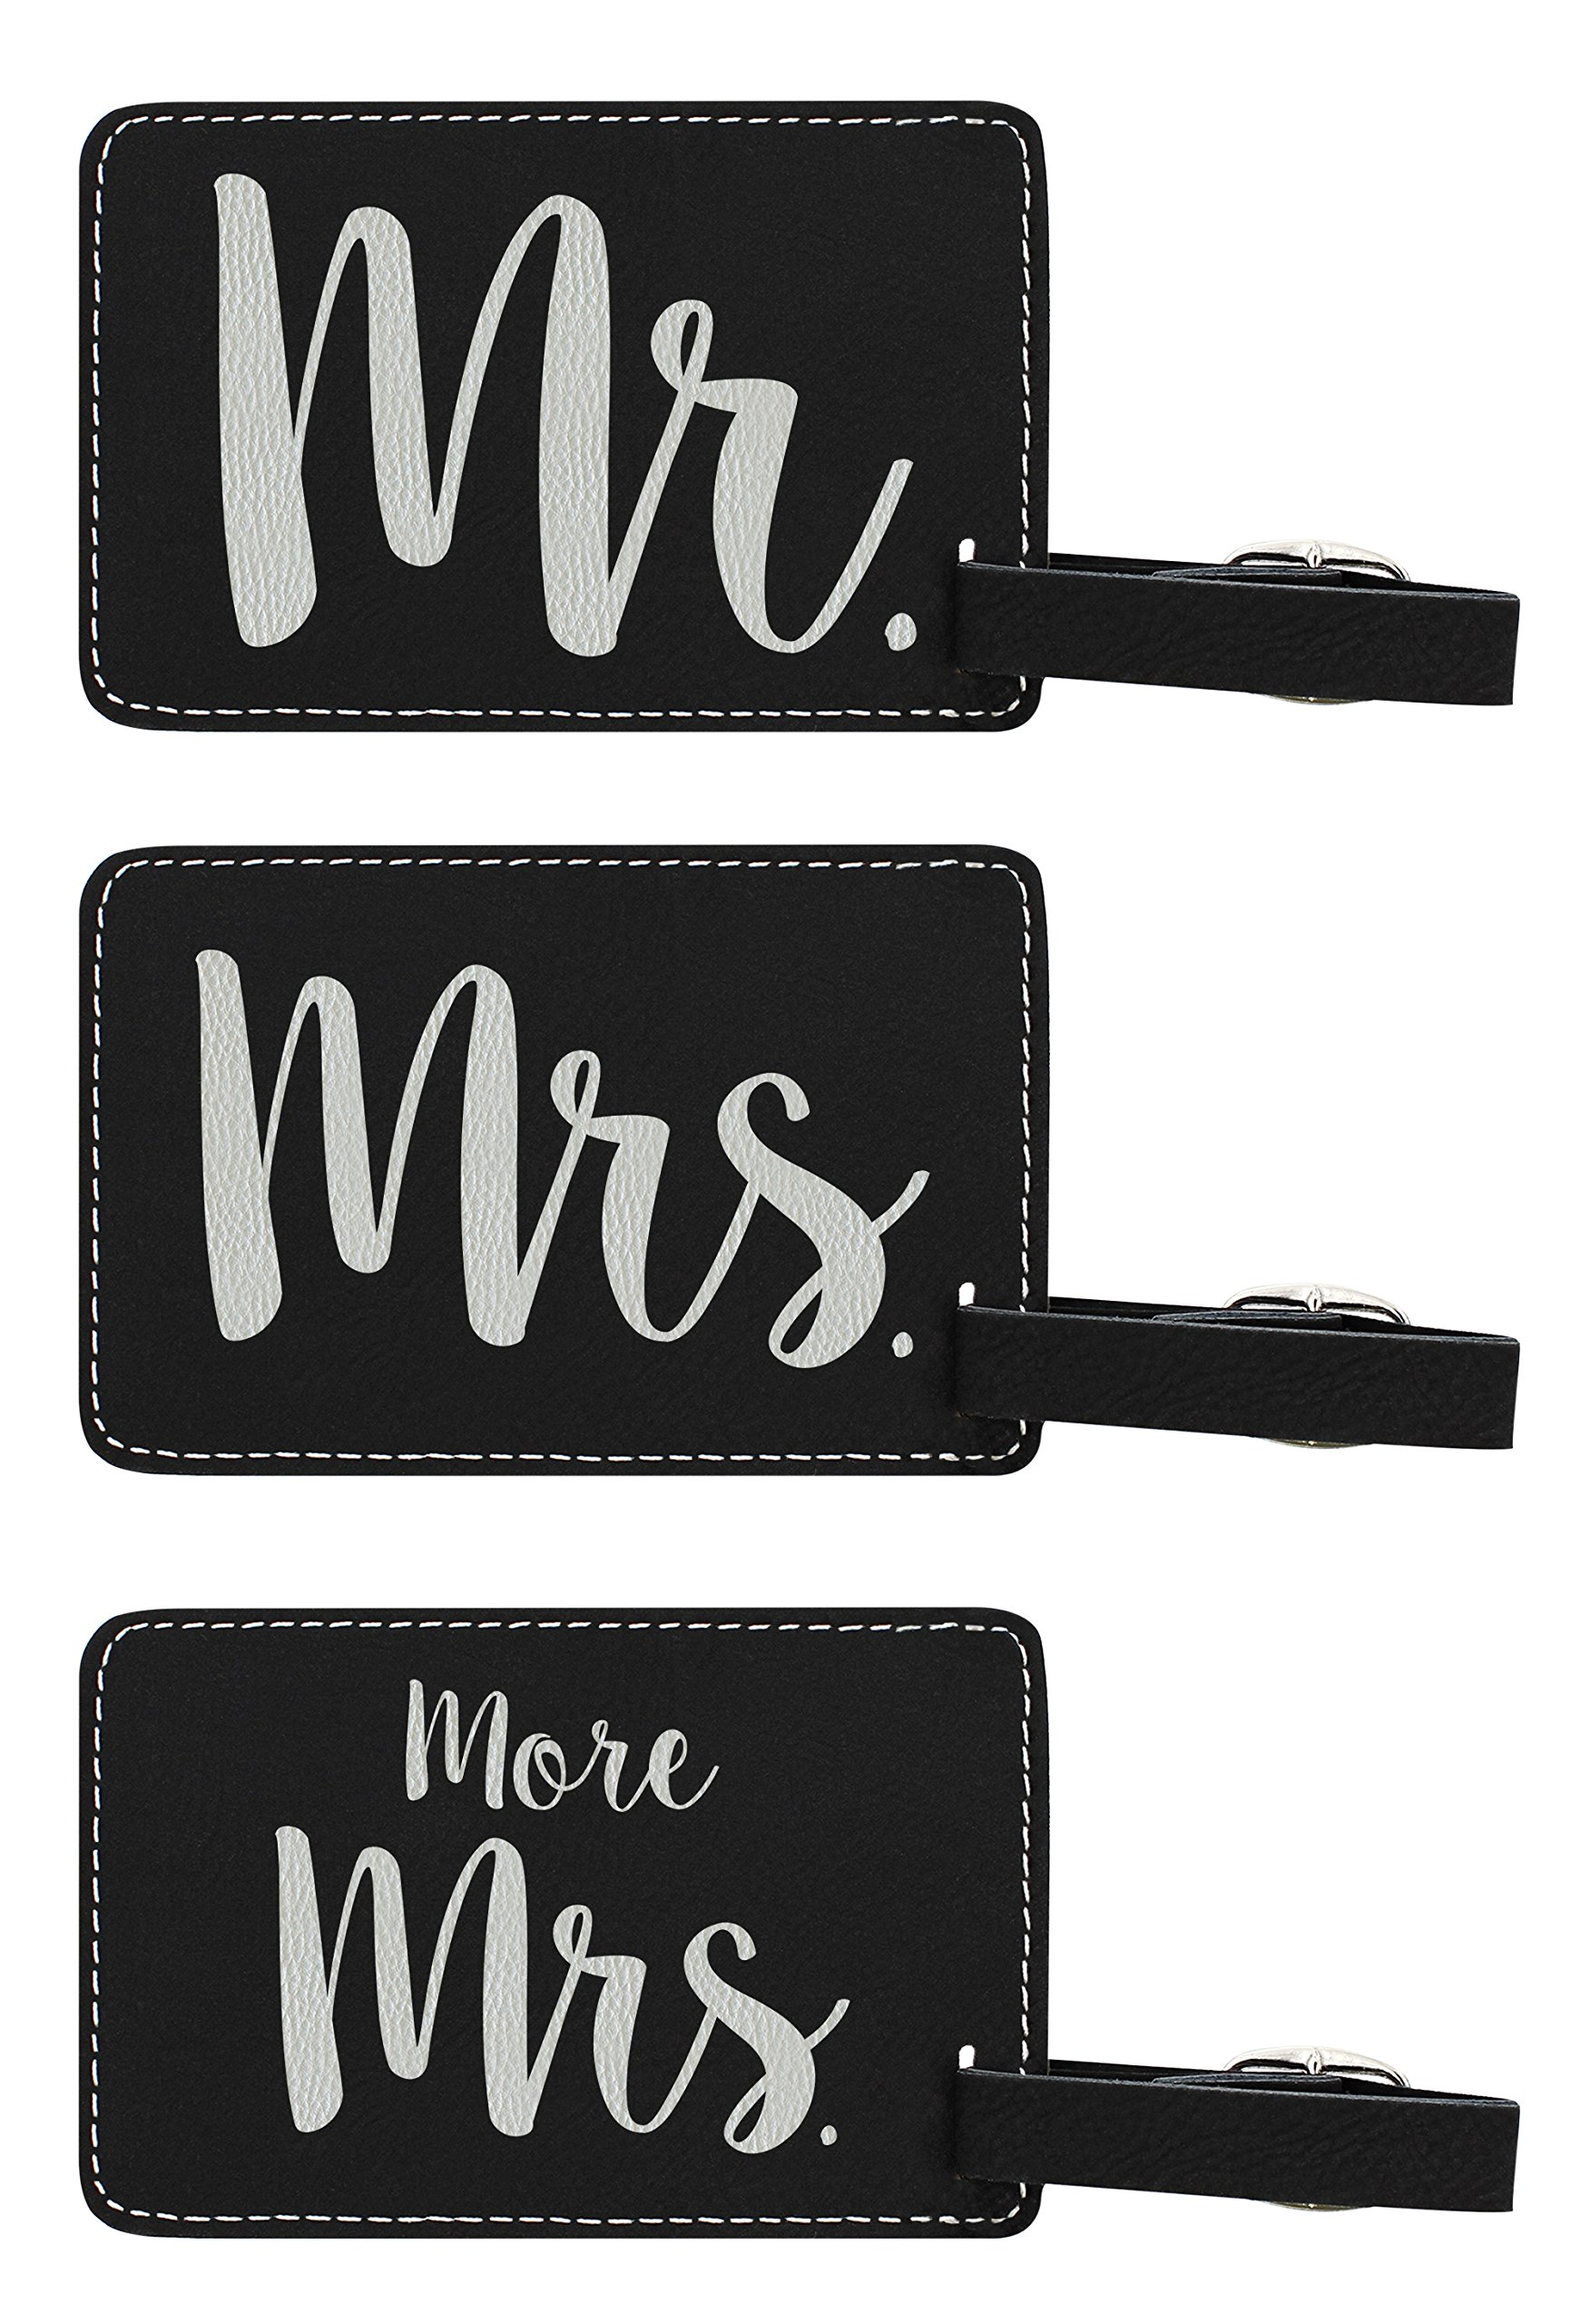 Luggage Tags for Couples Mr & Mrs & More Mrs Matching Couples Luggage Tags Couples Gifts for Newlyweds Anniversary Gifts 3-pack Laser Engraved Leather Luggage Tags Black by ThisWear